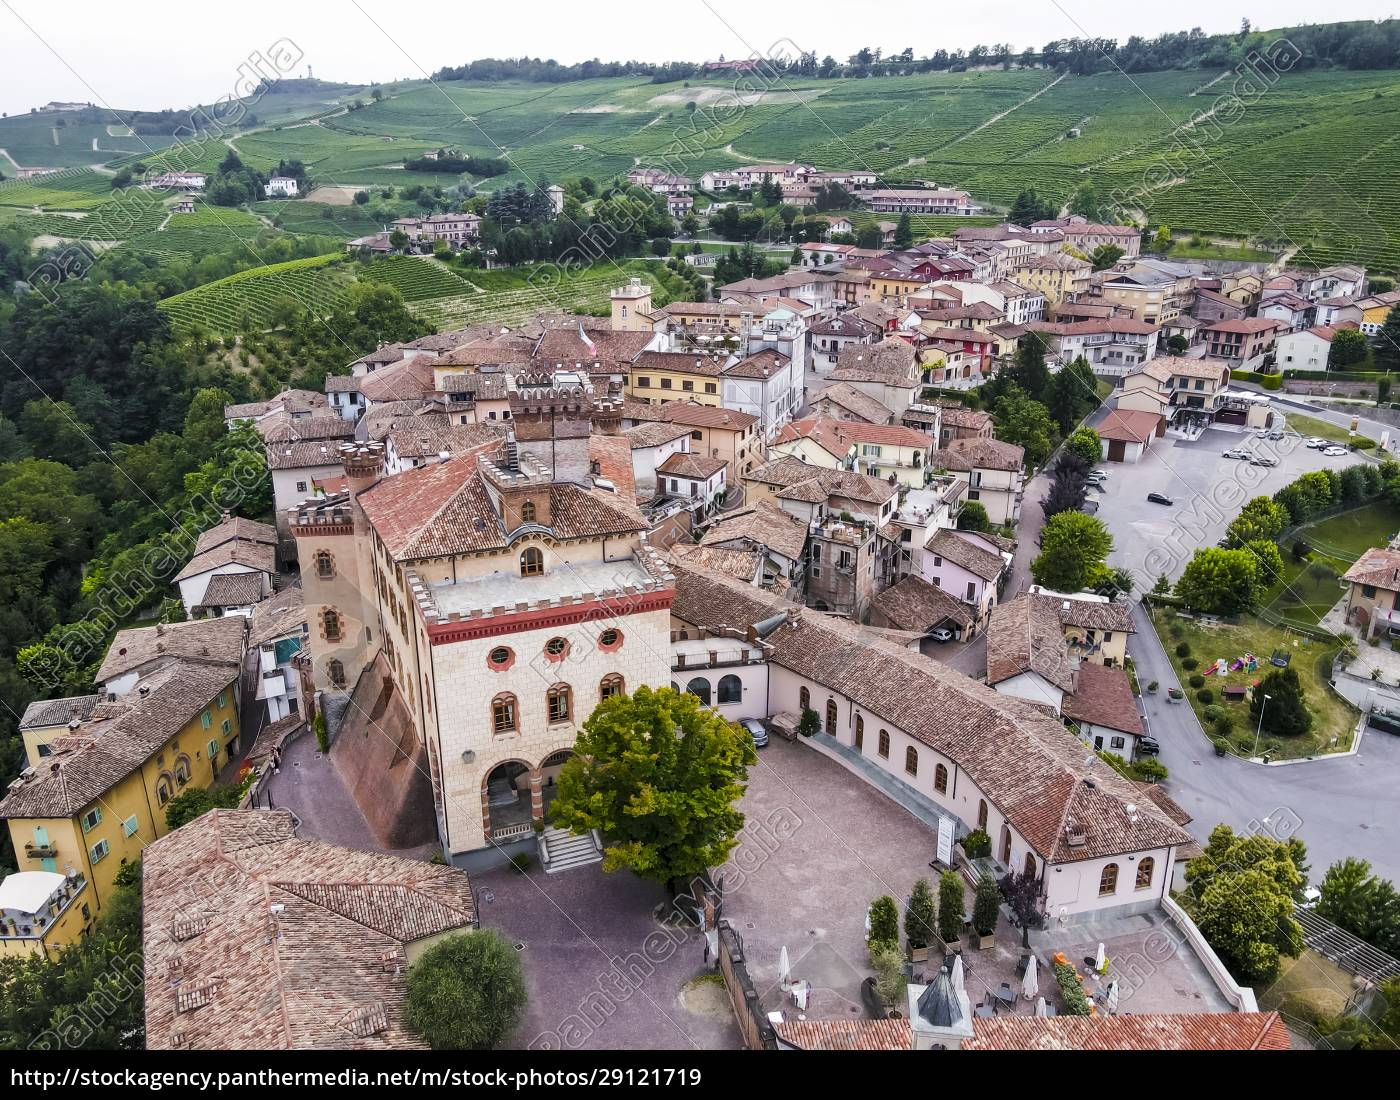 drone, view, of, old, rural, town - 29121719